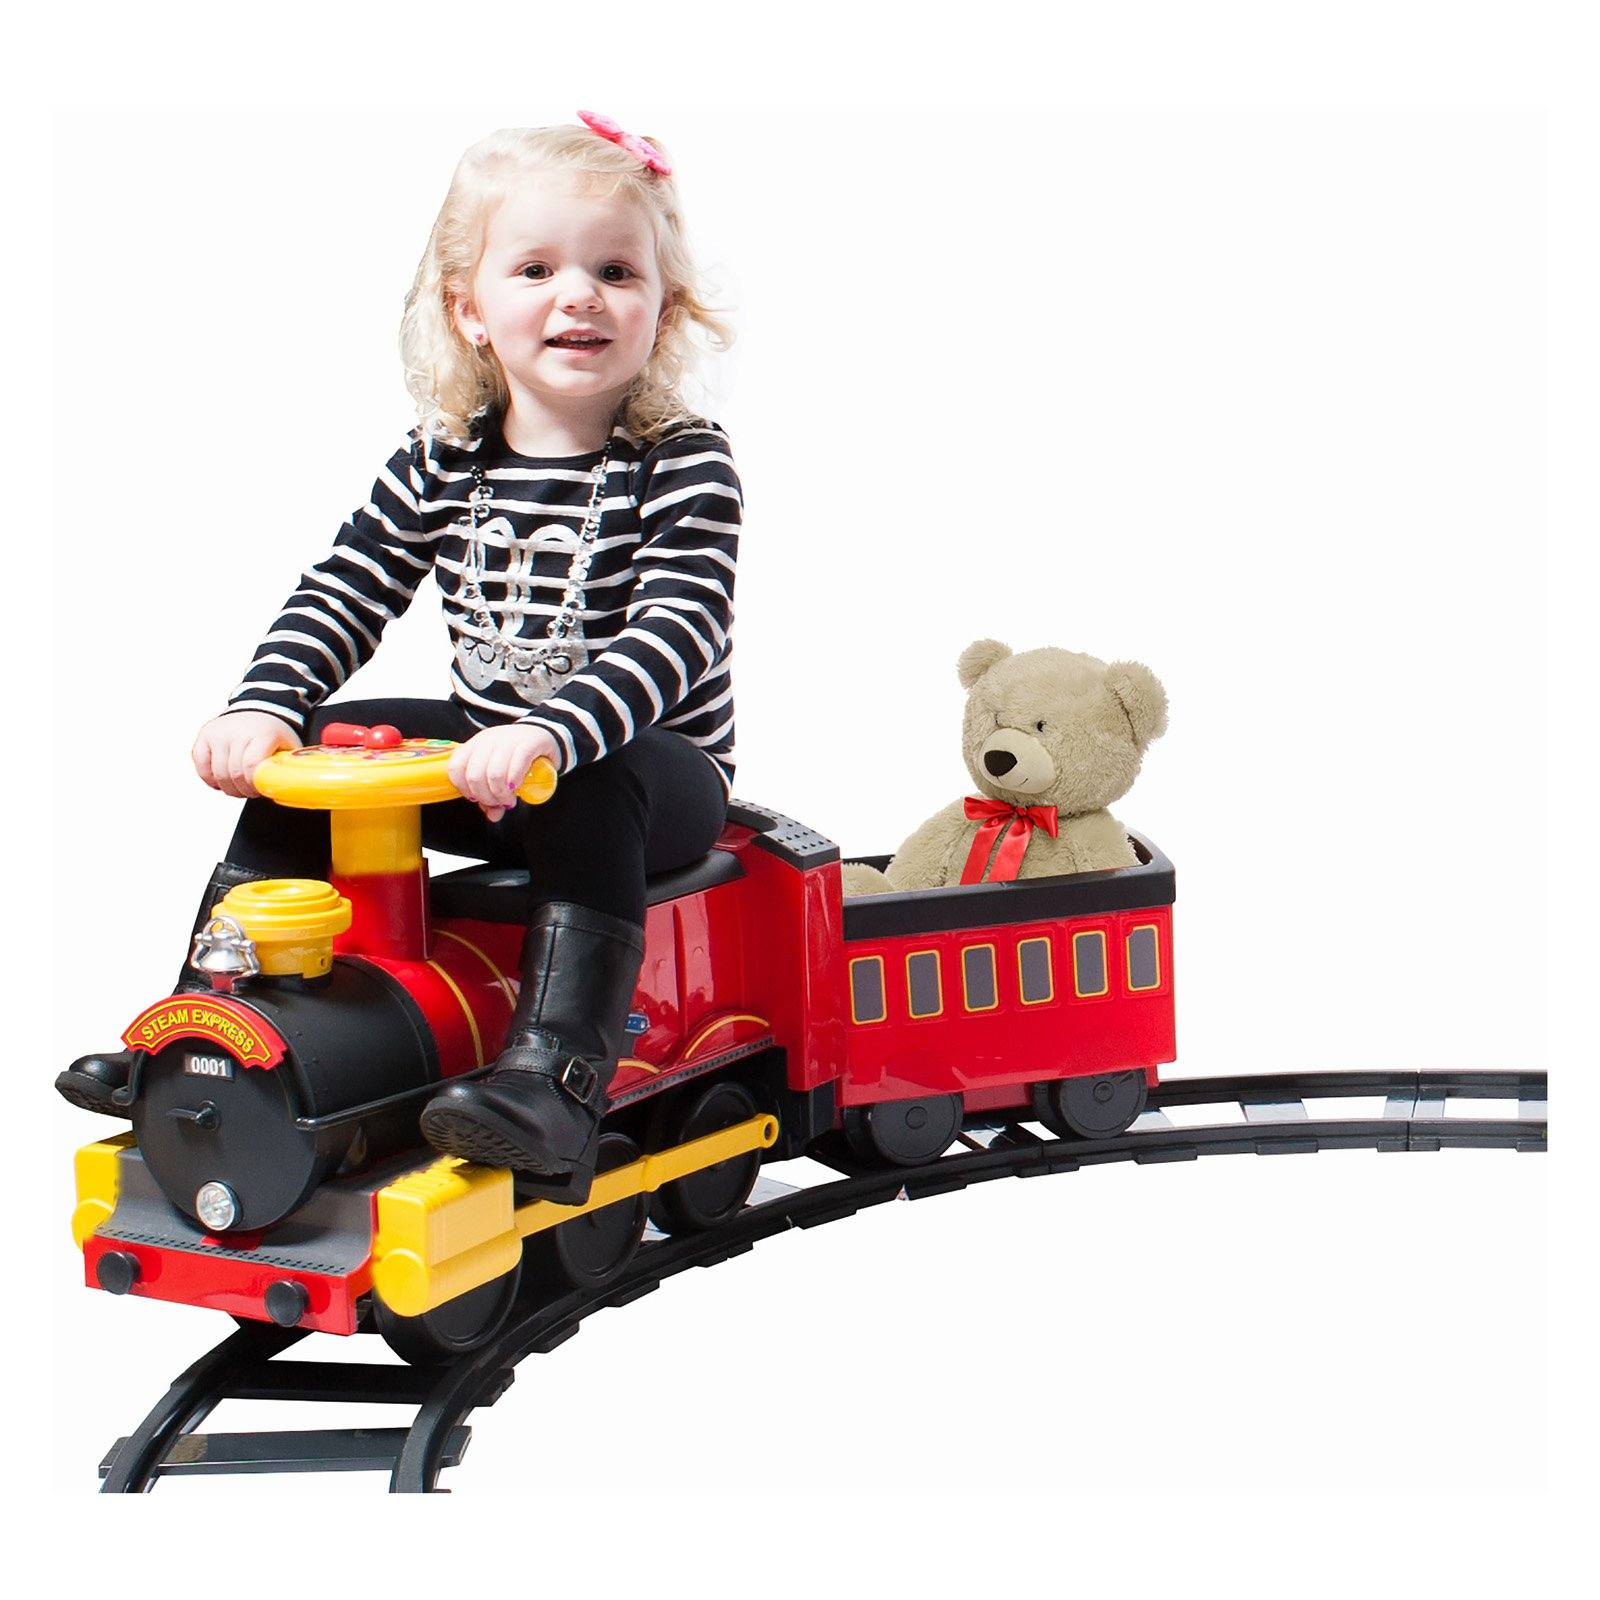 Rollplay Steam Train 6V Battery Powered Riding Toy